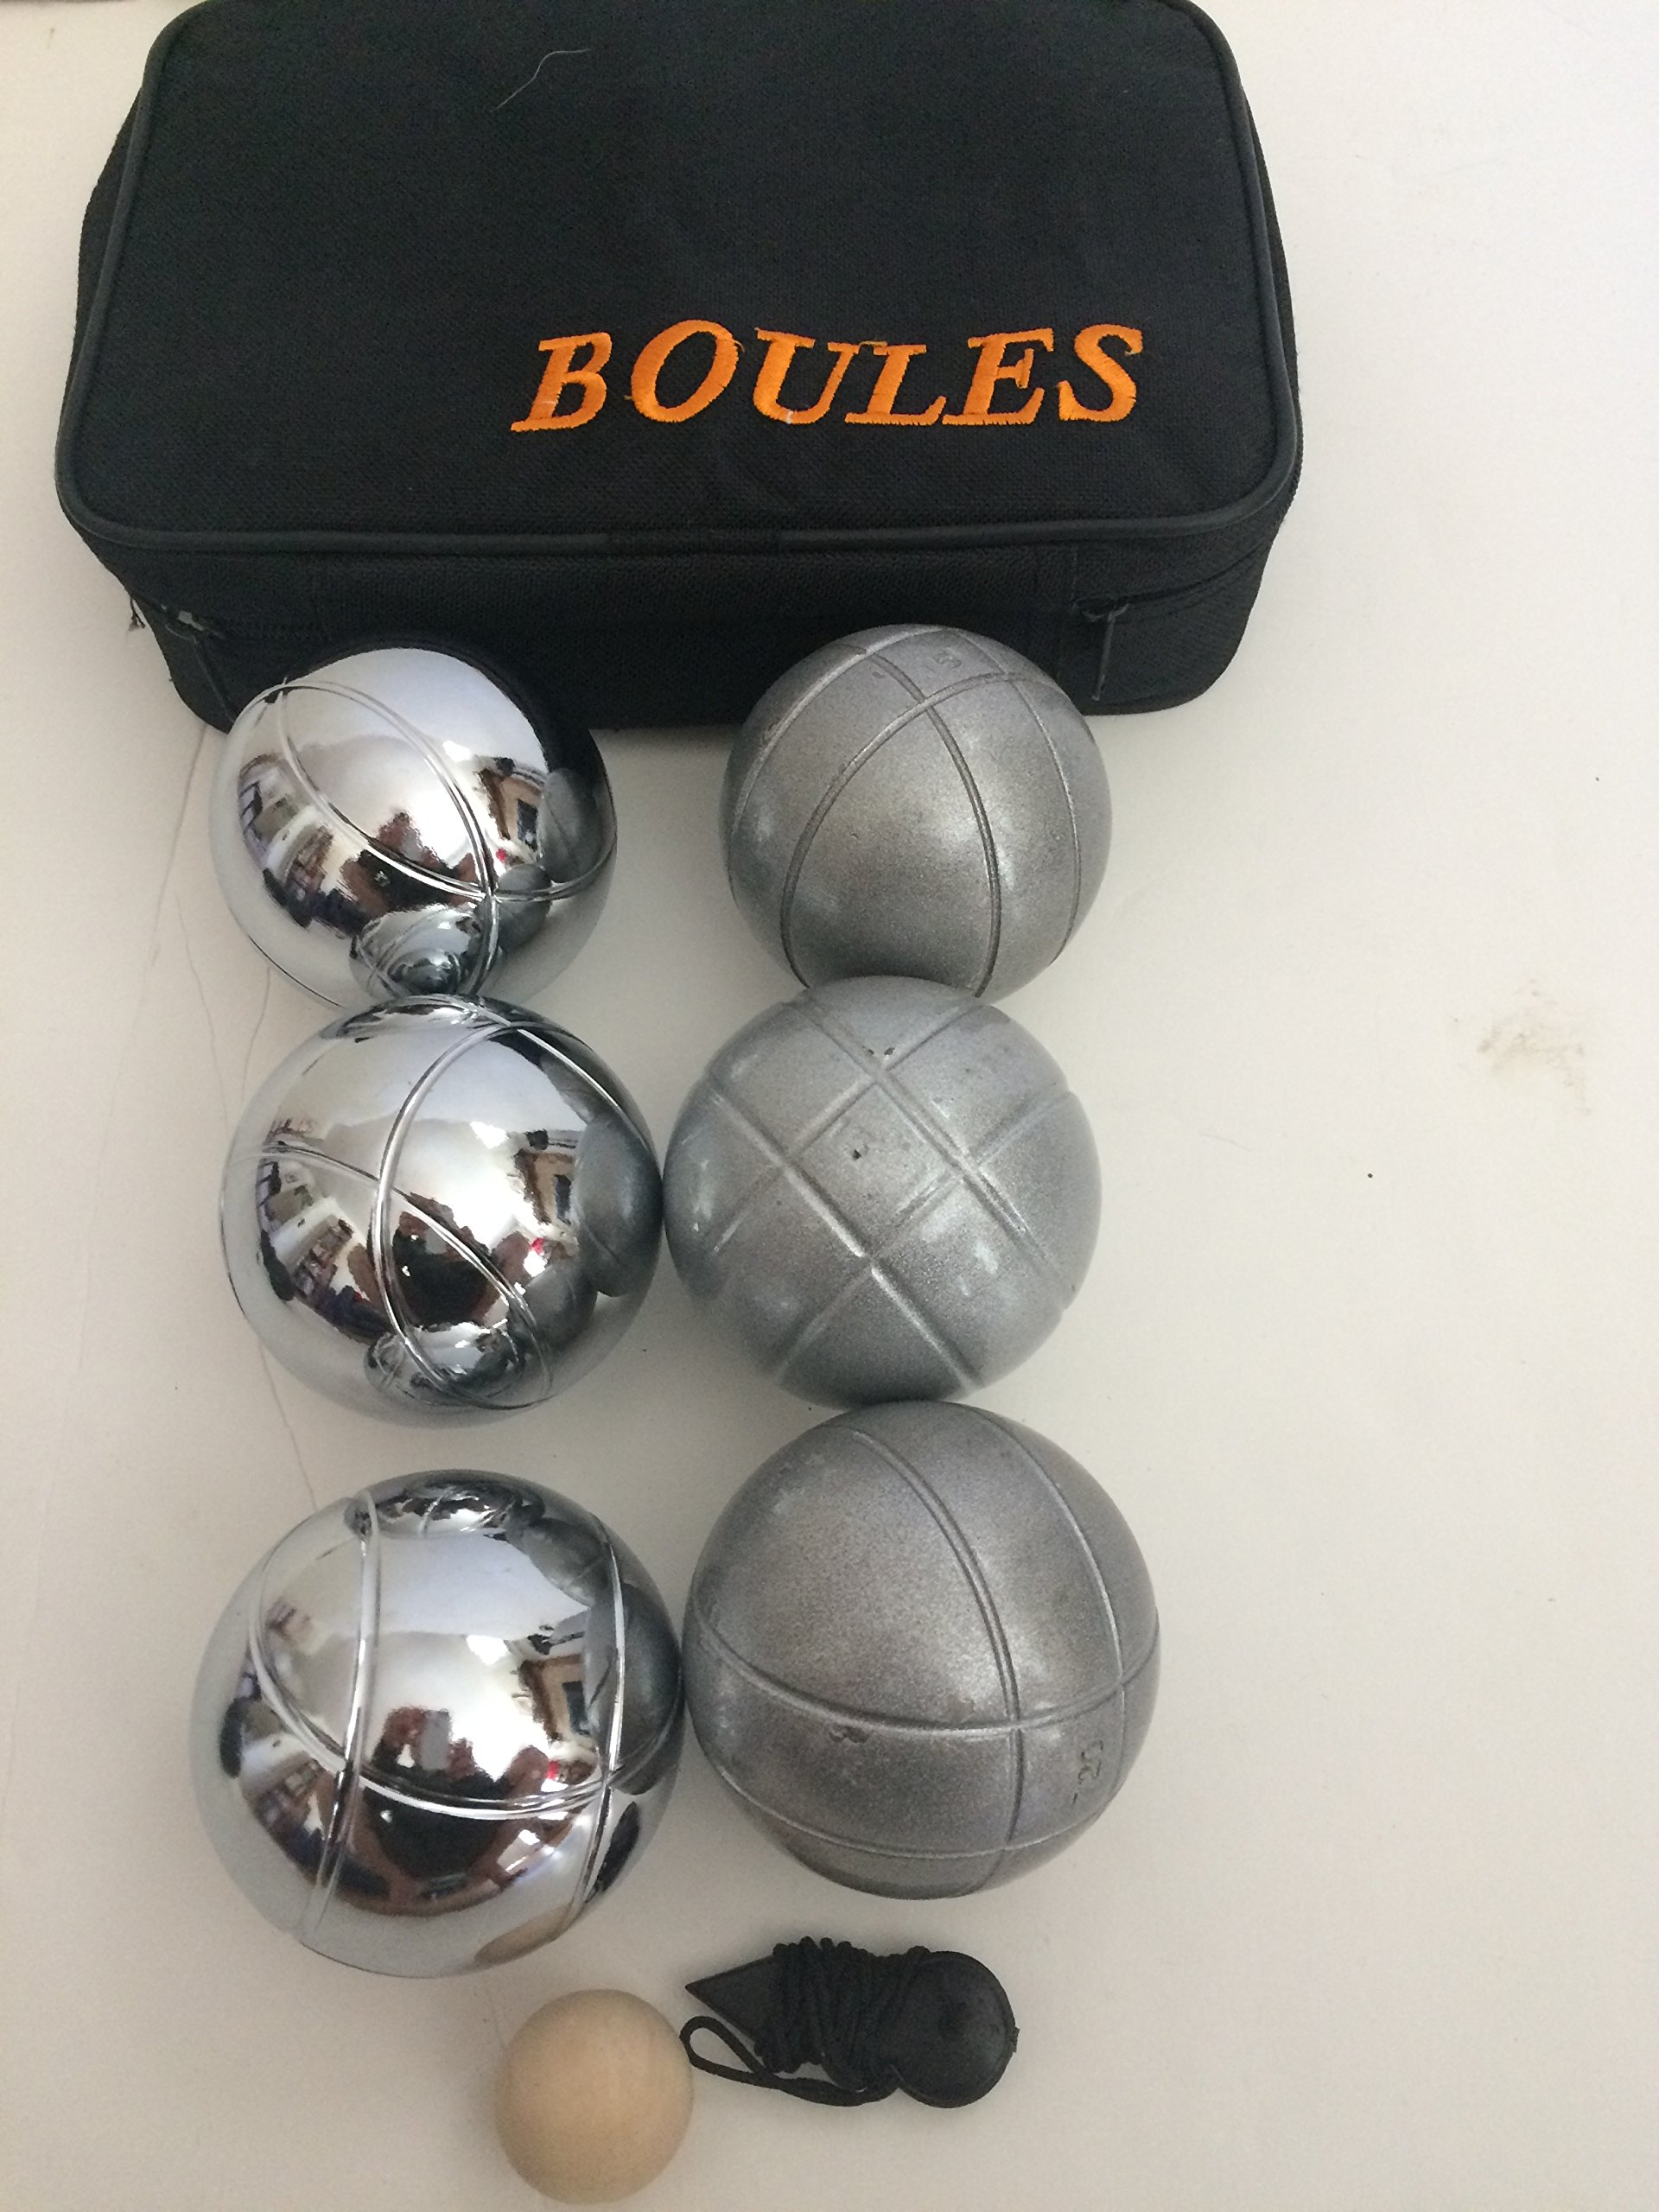 Unique 6 ball 73mm Metal Bocce/Petanque set with 3 grind sand balls and 3 silver balls by BuyBocceBalls